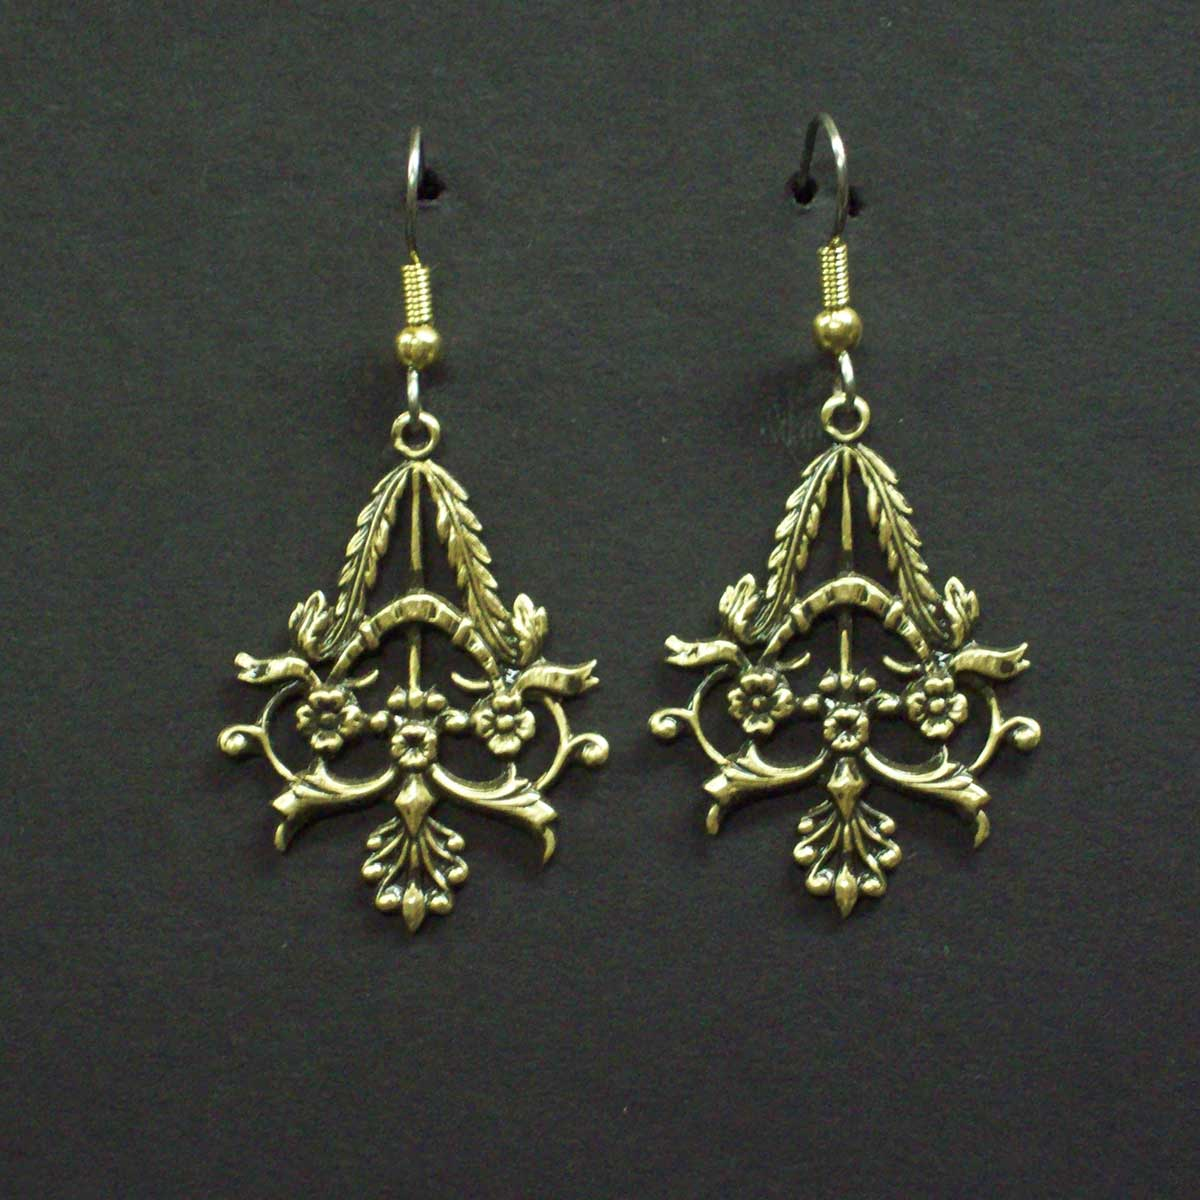 Victorian Floral Dangle Earrings